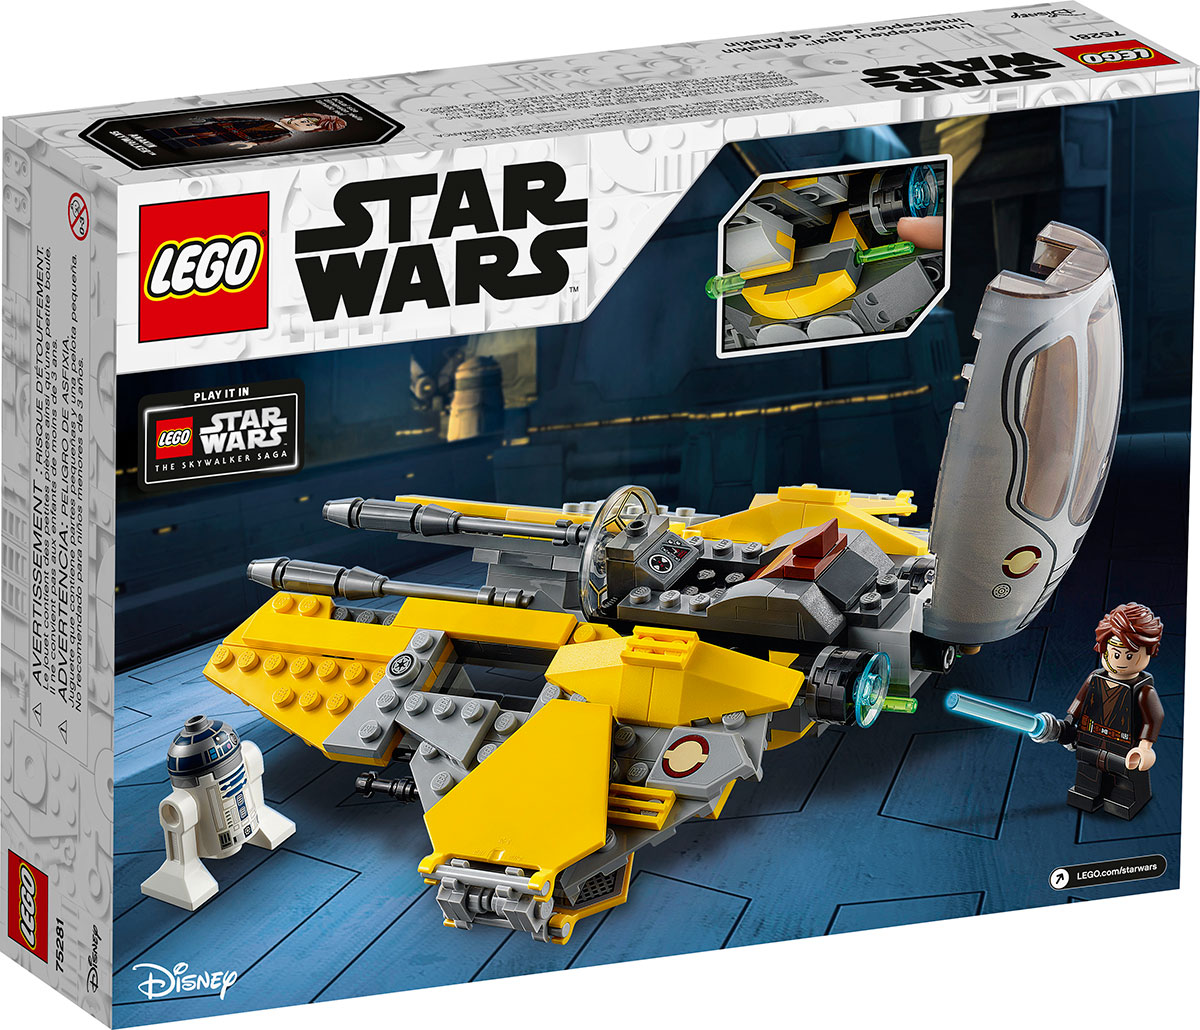 lego star wars 2020 update  official images  the brick